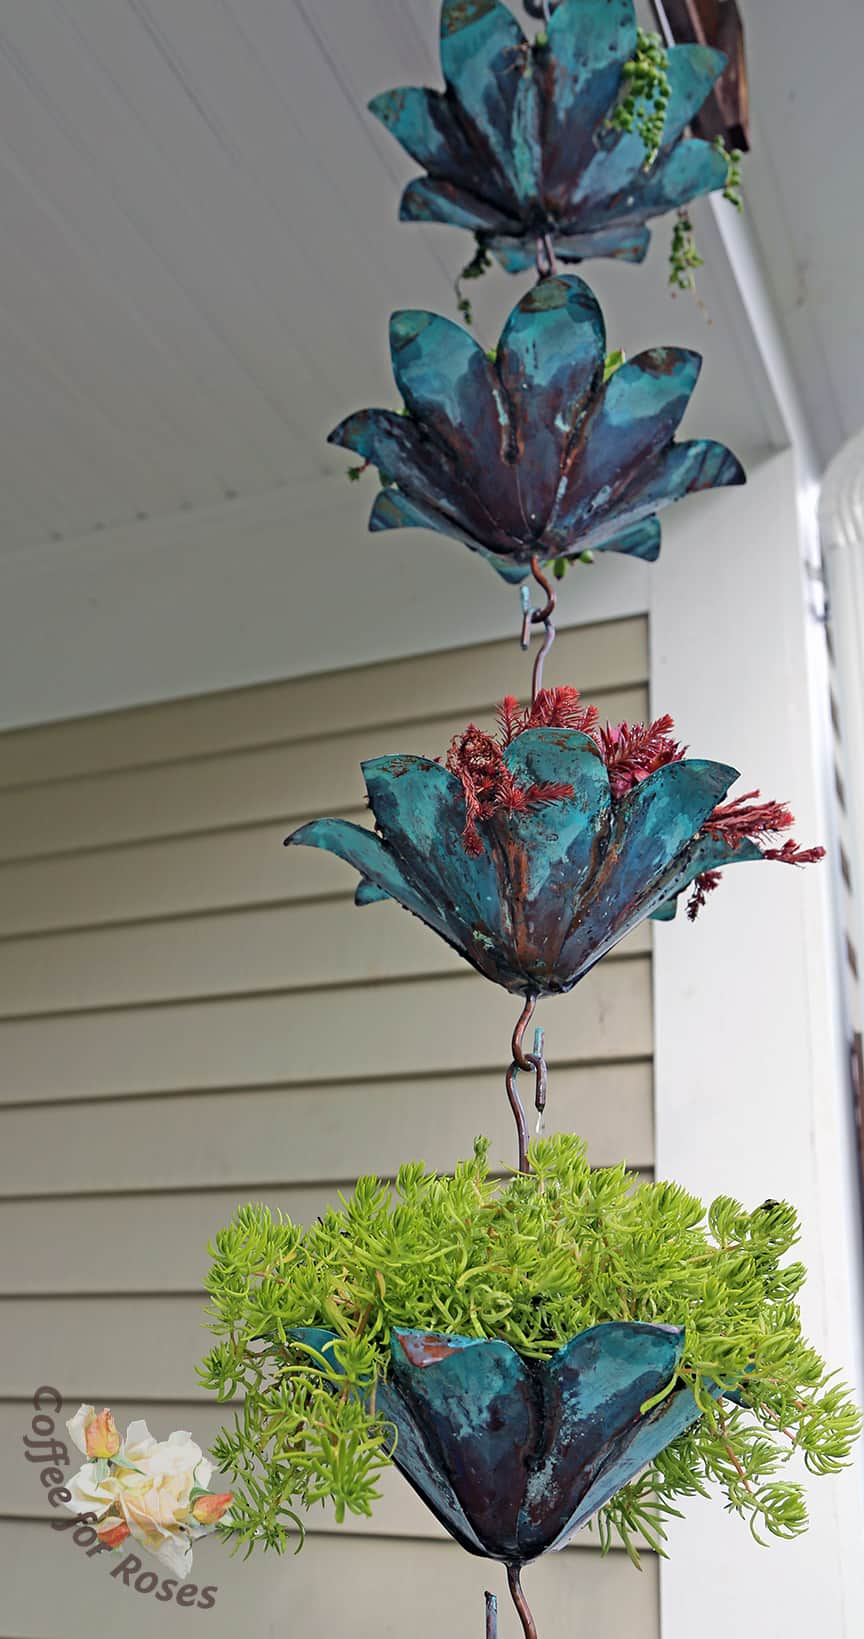 I hung this on one side of my front porch and let the green of the copper determine the color scheme for the pots on the porch this year.